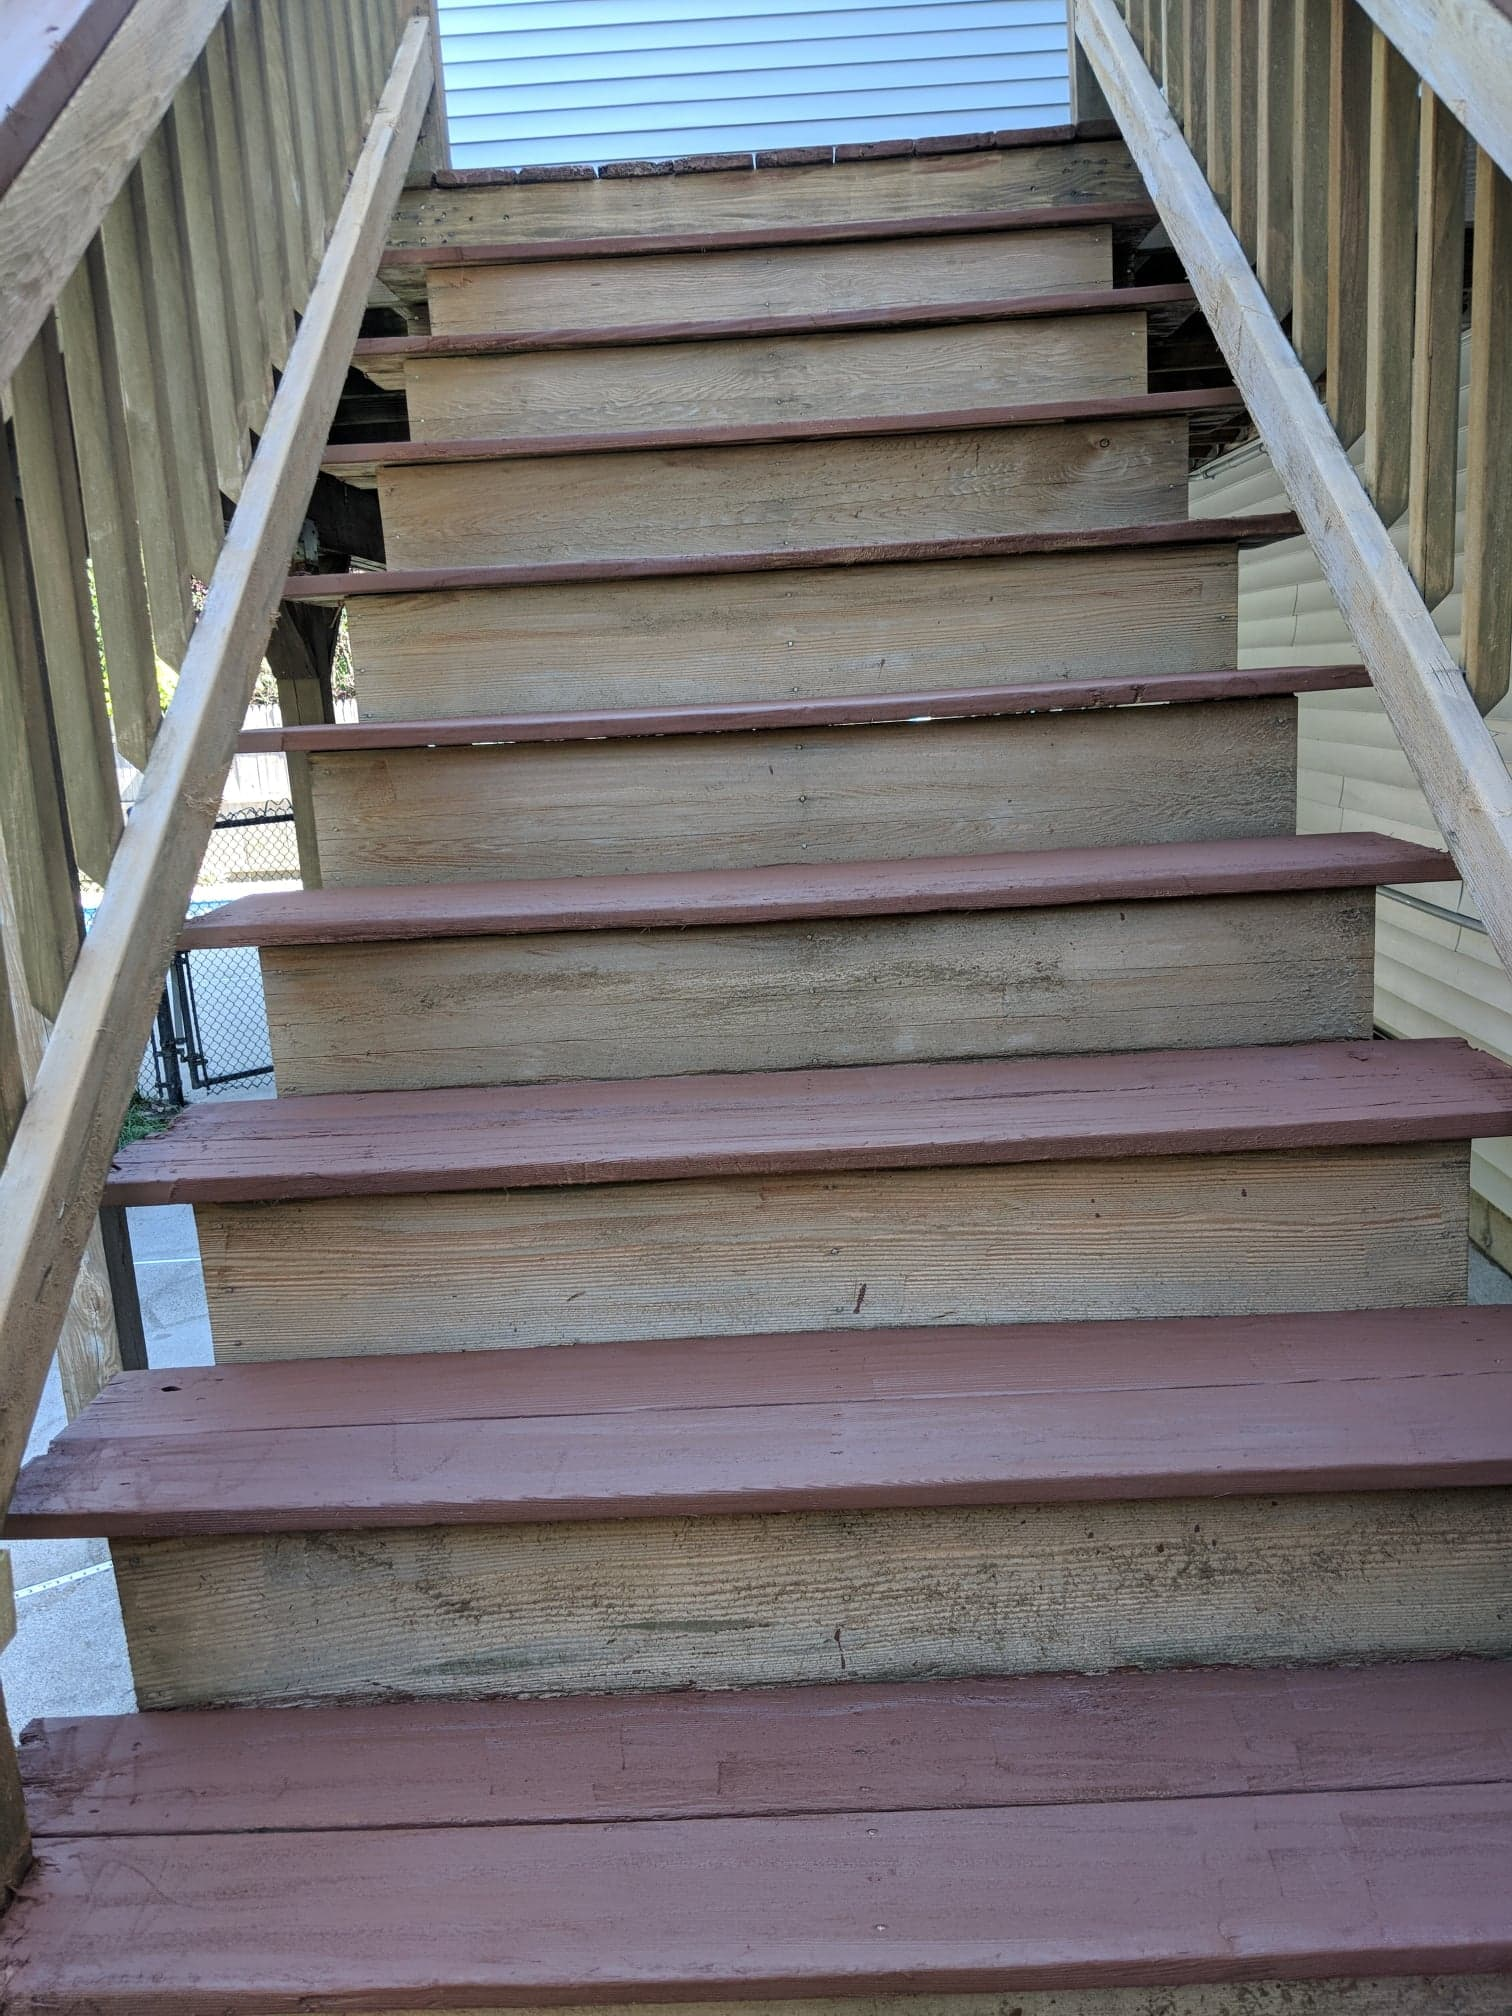 handyman services repairing a deck and stairs with re-staining